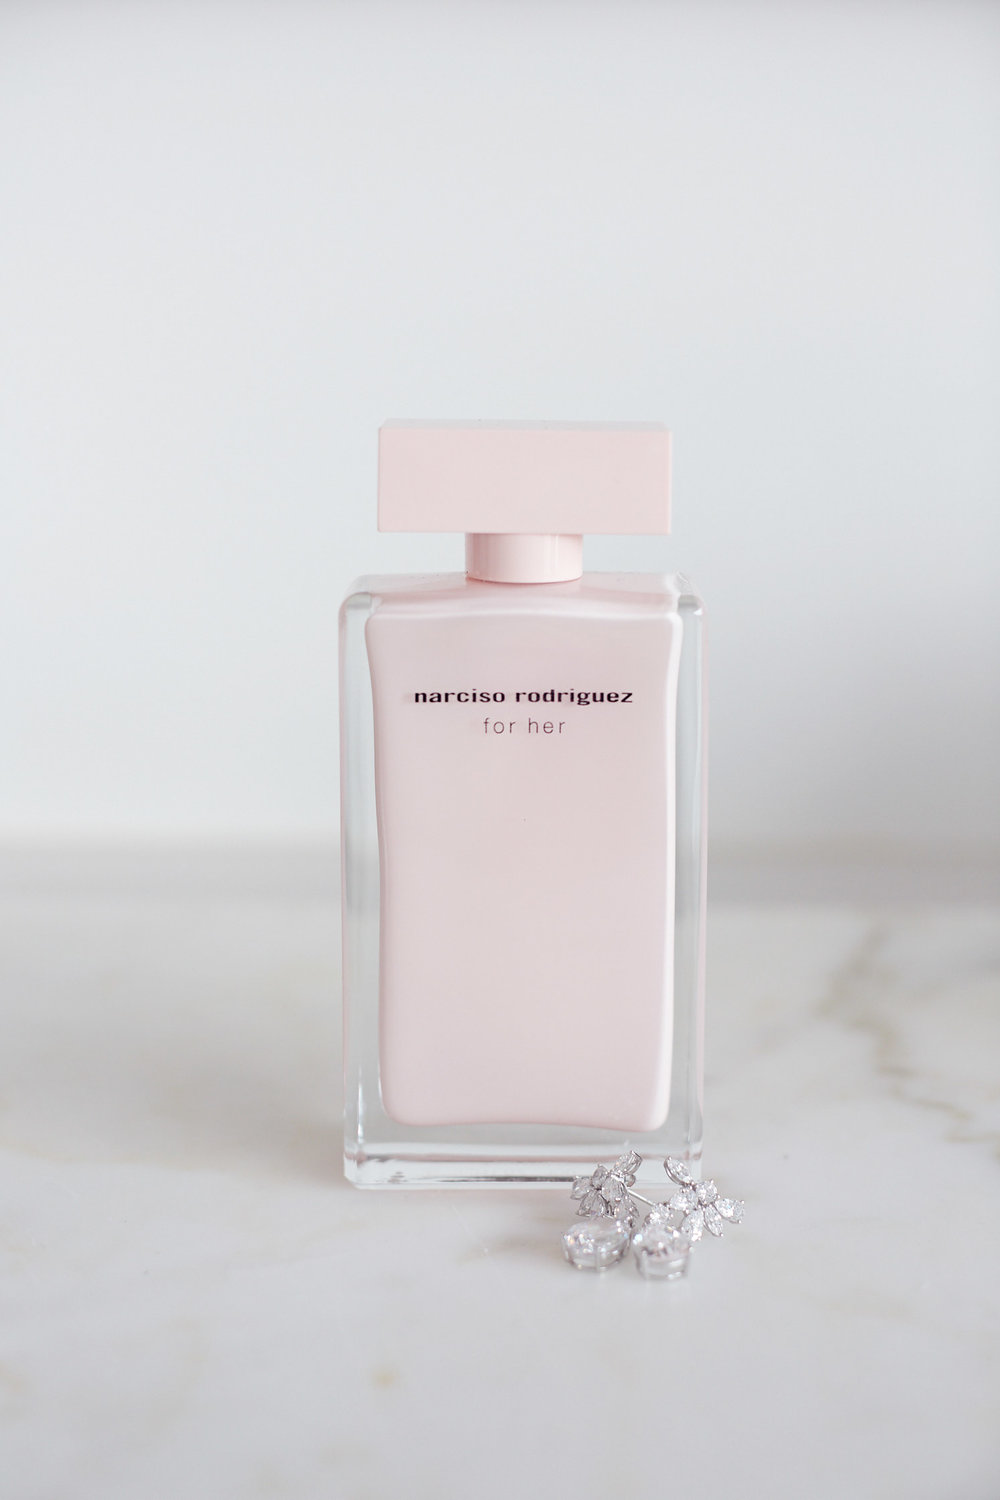 stones of the yarra valley narciso rodriguez